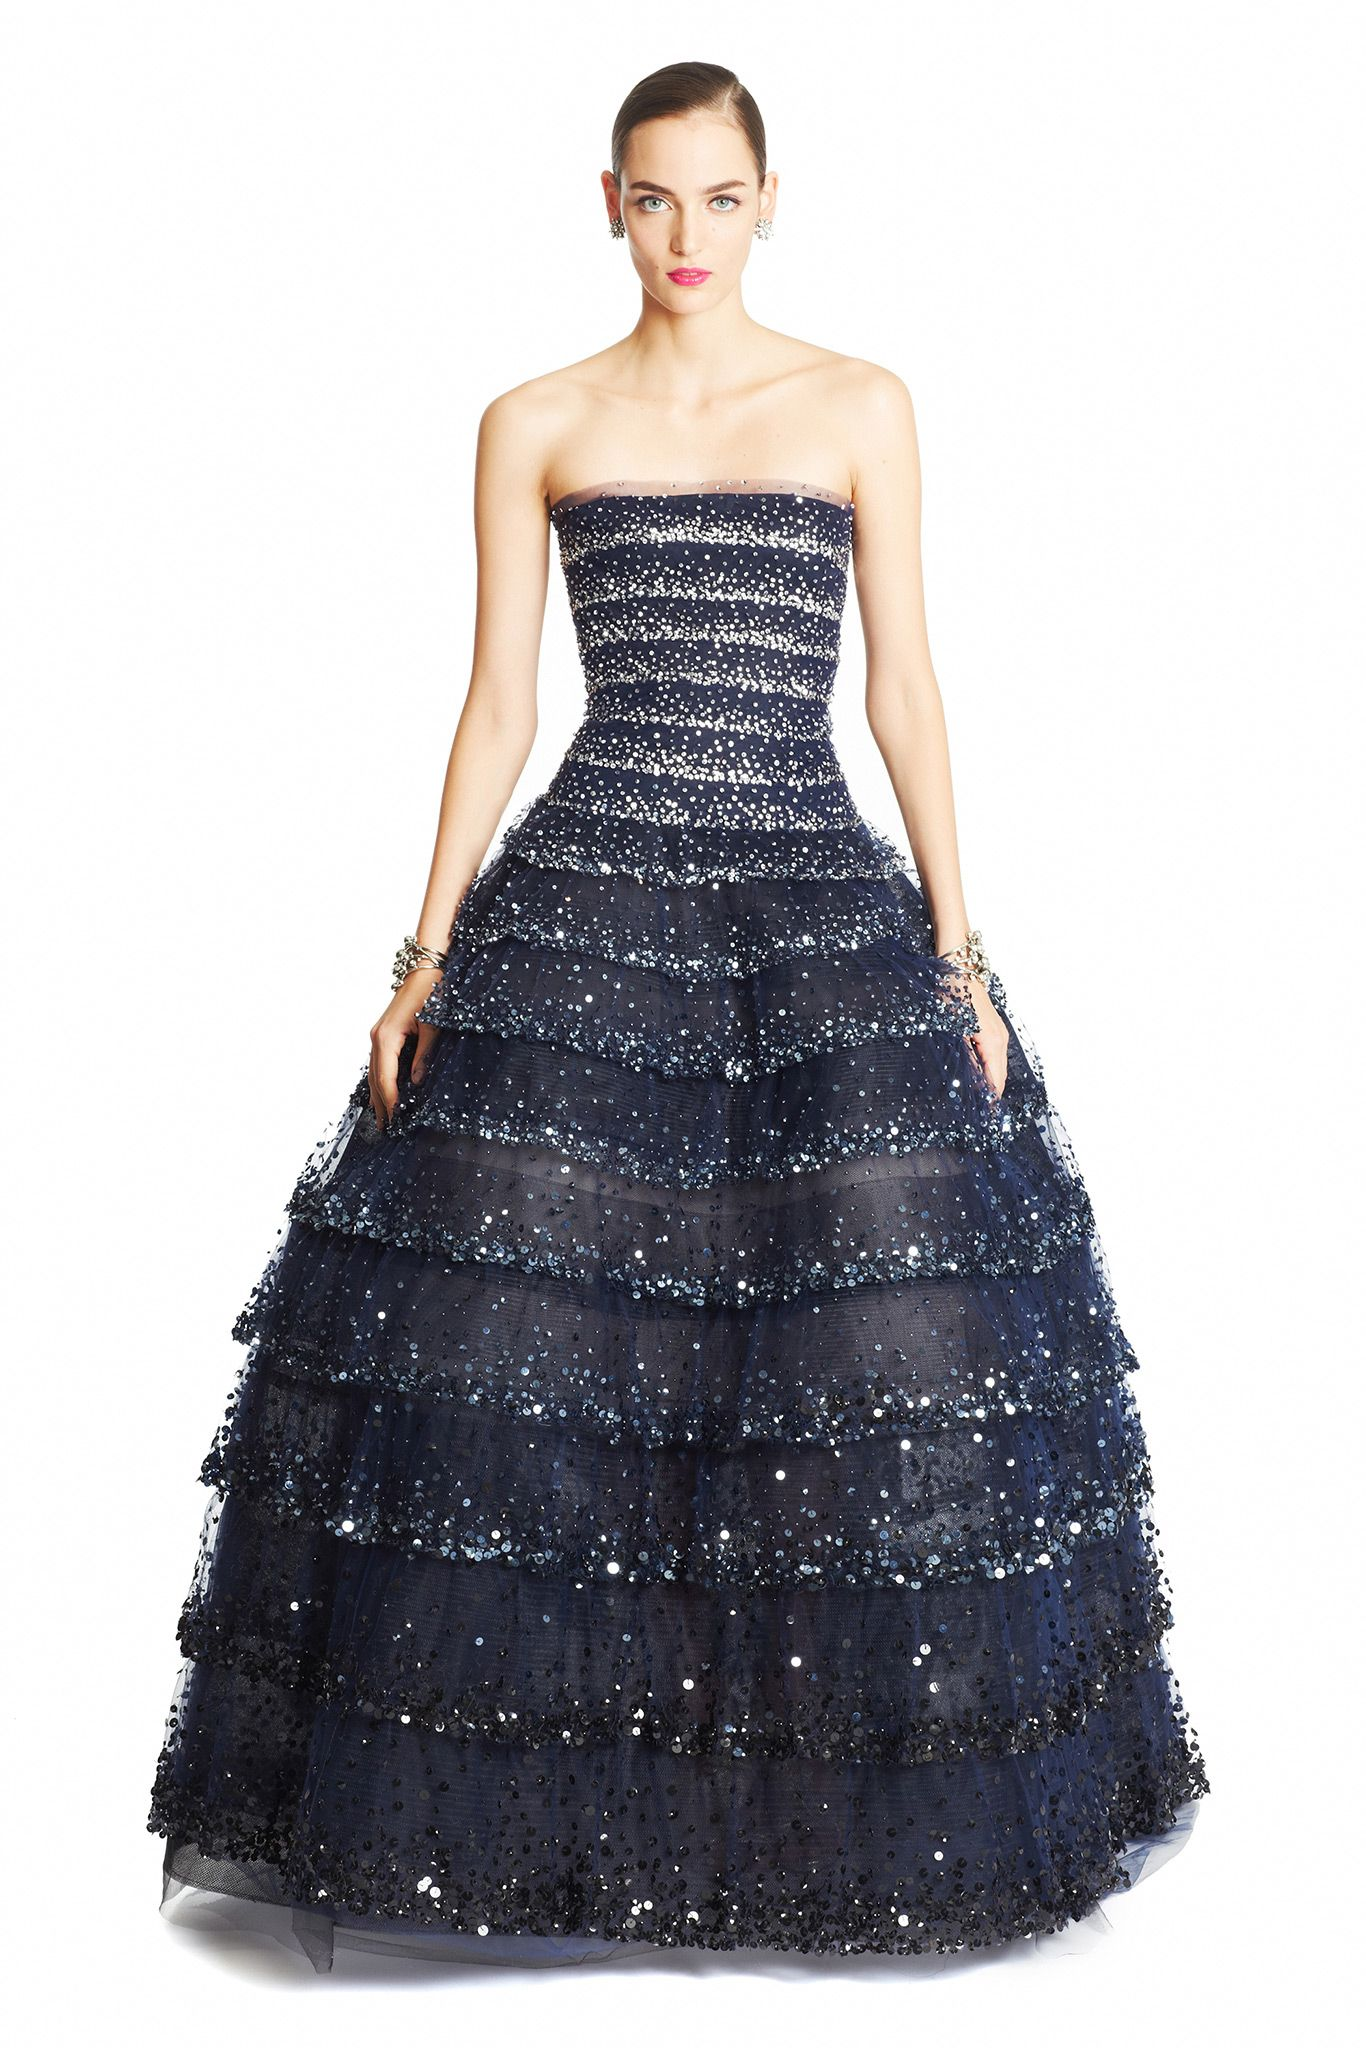 This Oscar De La Renta Sequin Embellished Navy Tulle Gown Worn By